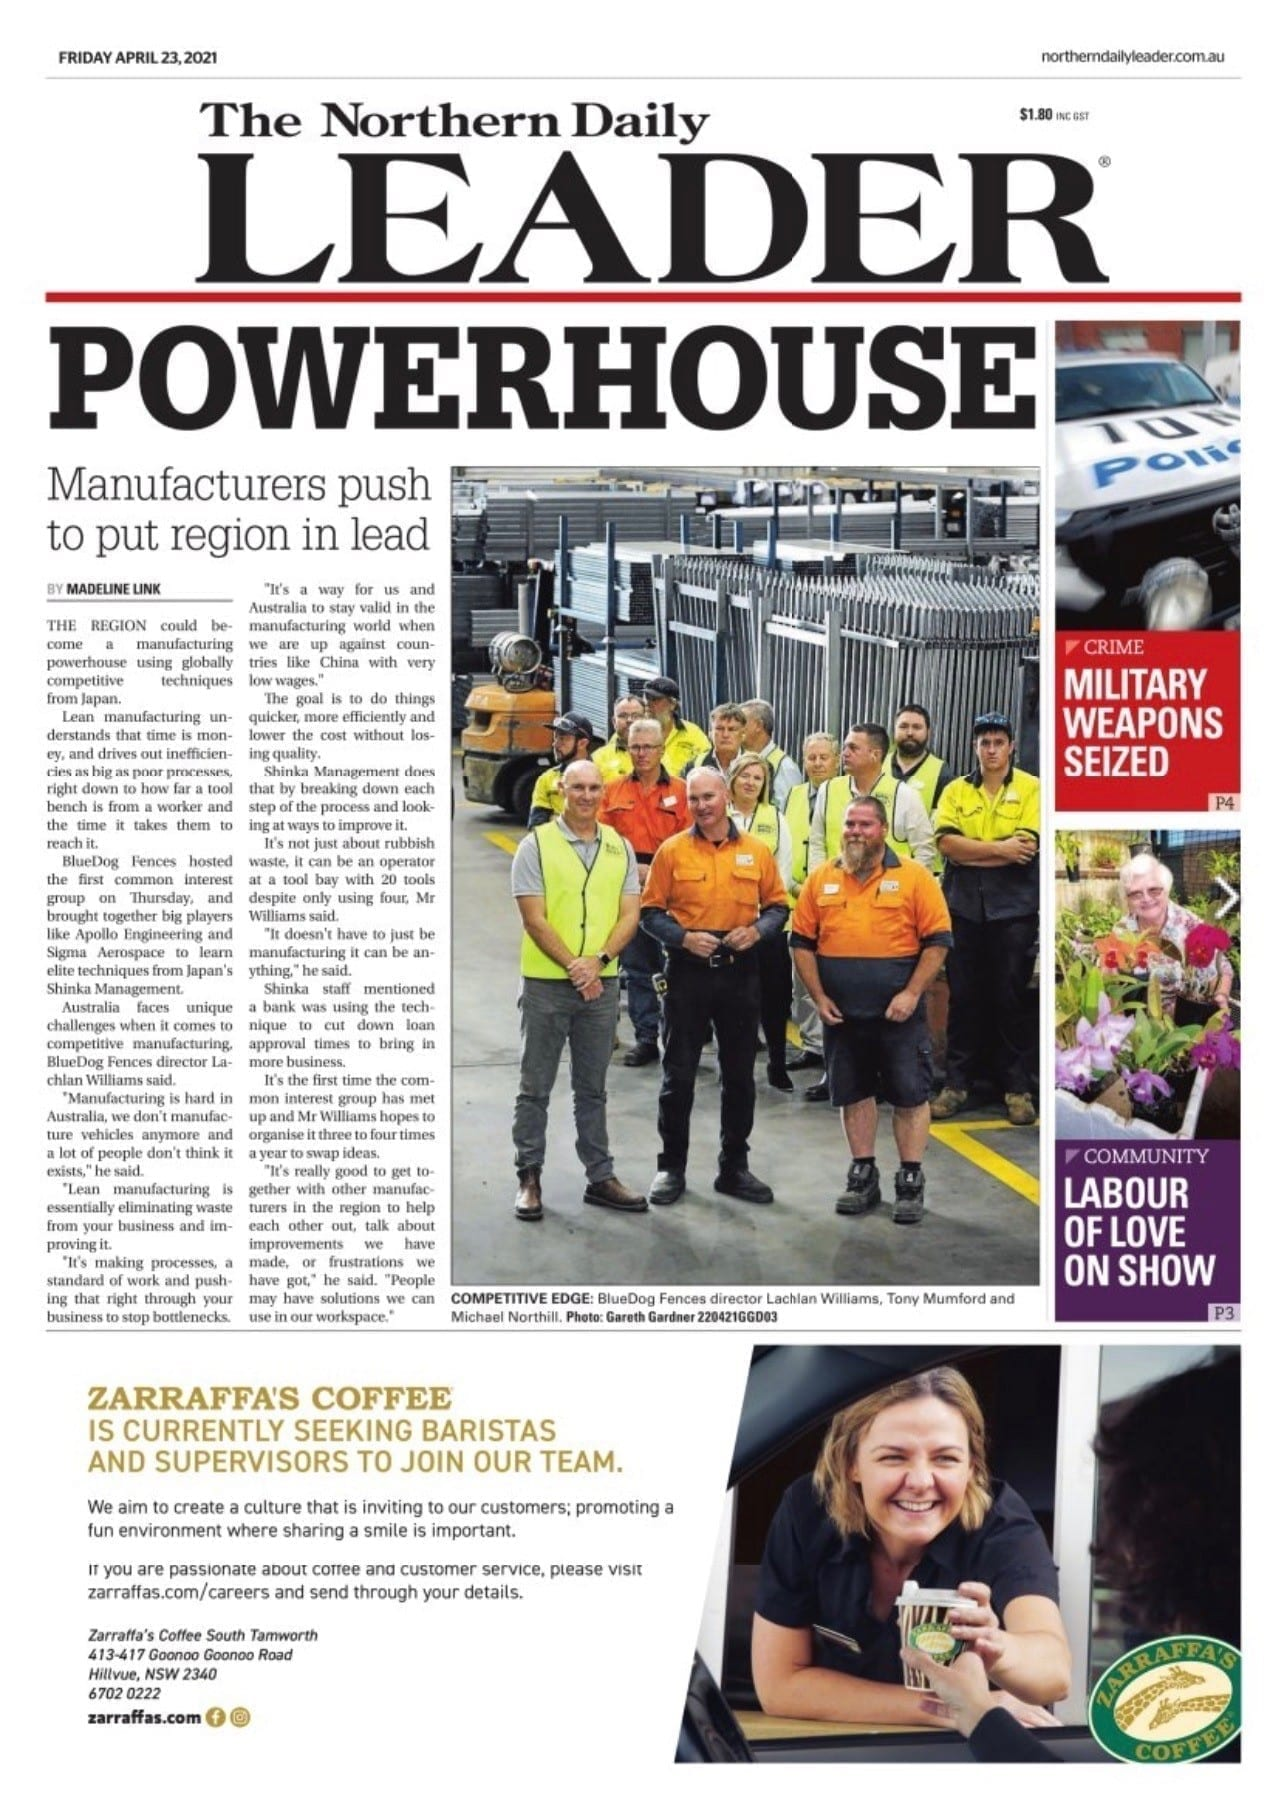 The Northern Daily Leader front page